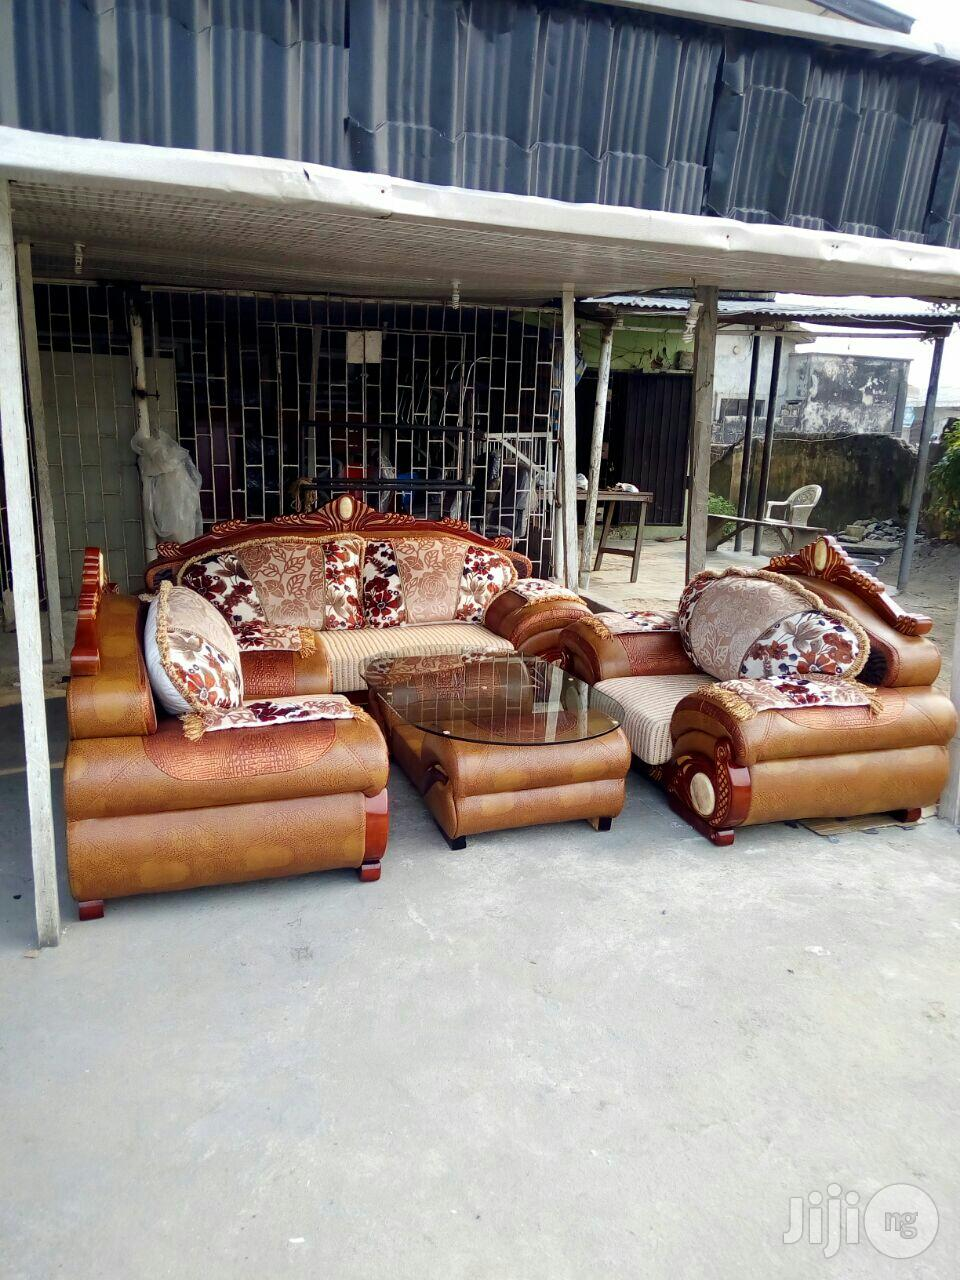 Royal Fabric and Leather Sofa Model Aw9191 | Furniture for sale in Ikoyi, Lagos State, Nigeria